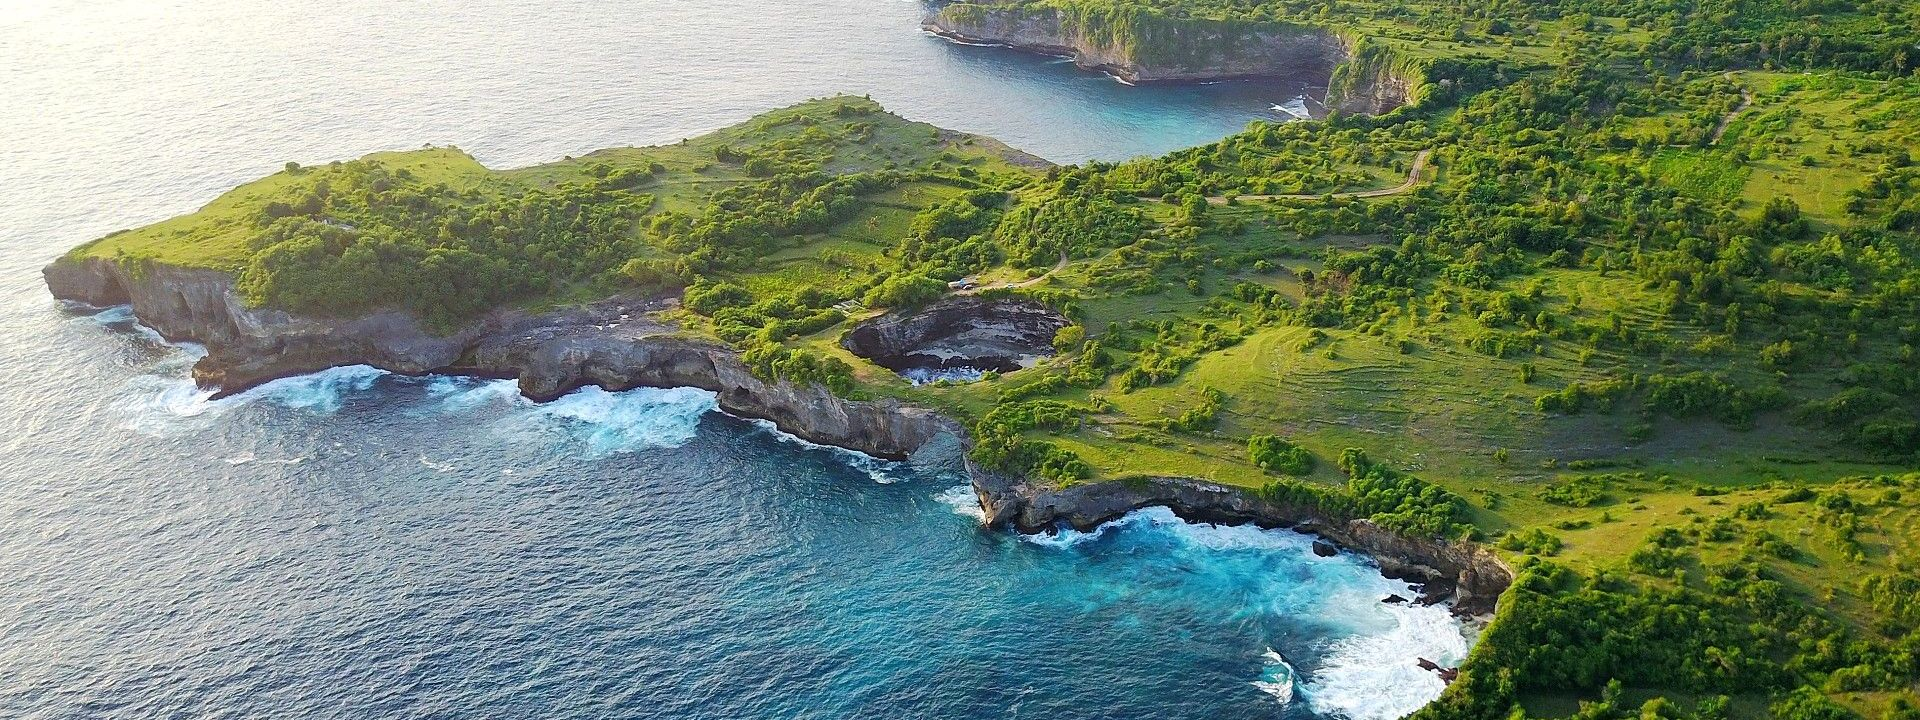 Bali to Nusa Penida - Bali Tour Vacation Special Package